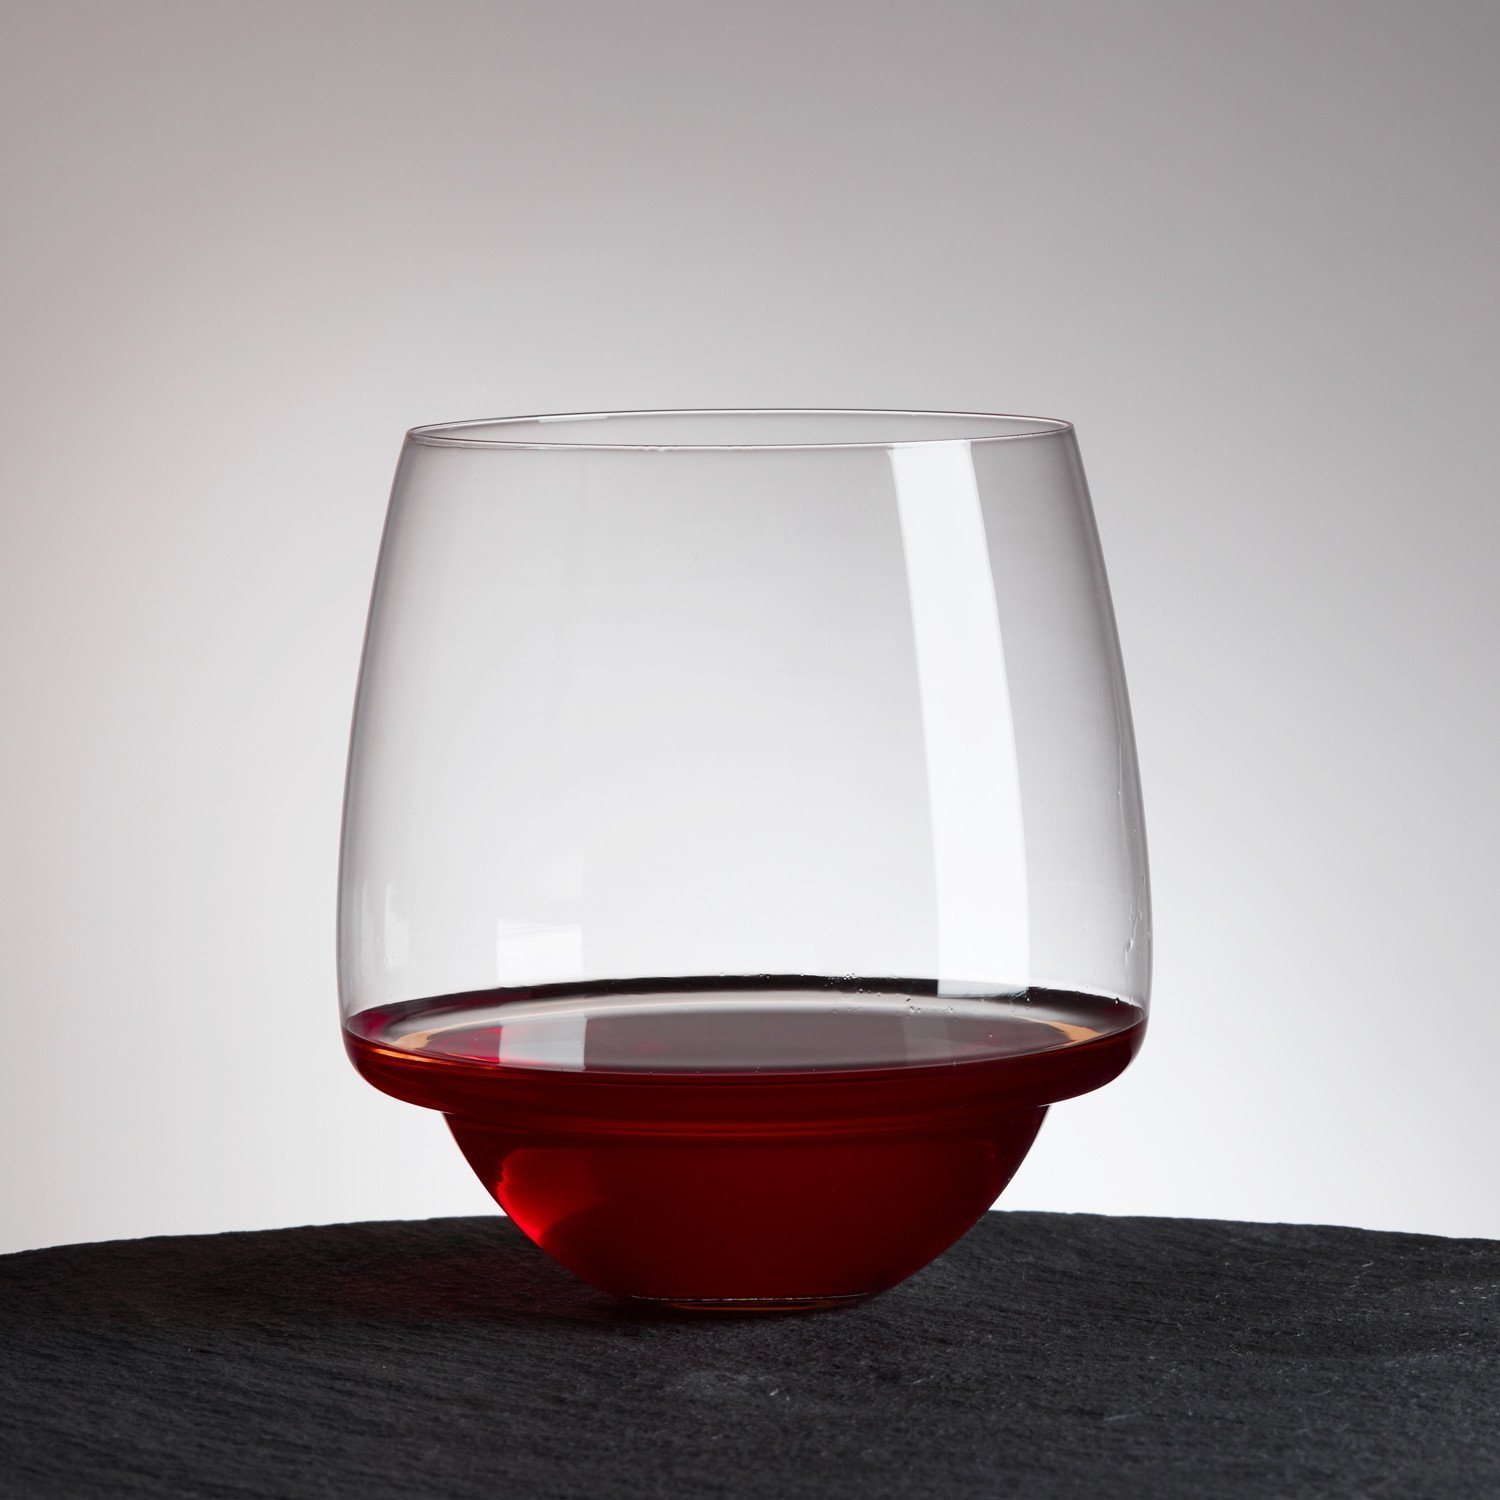 Saturn Wine Glass Unique And Elegant Spill Resistant Red Wine Glass Great Gift Idea B0716JKBGB 3